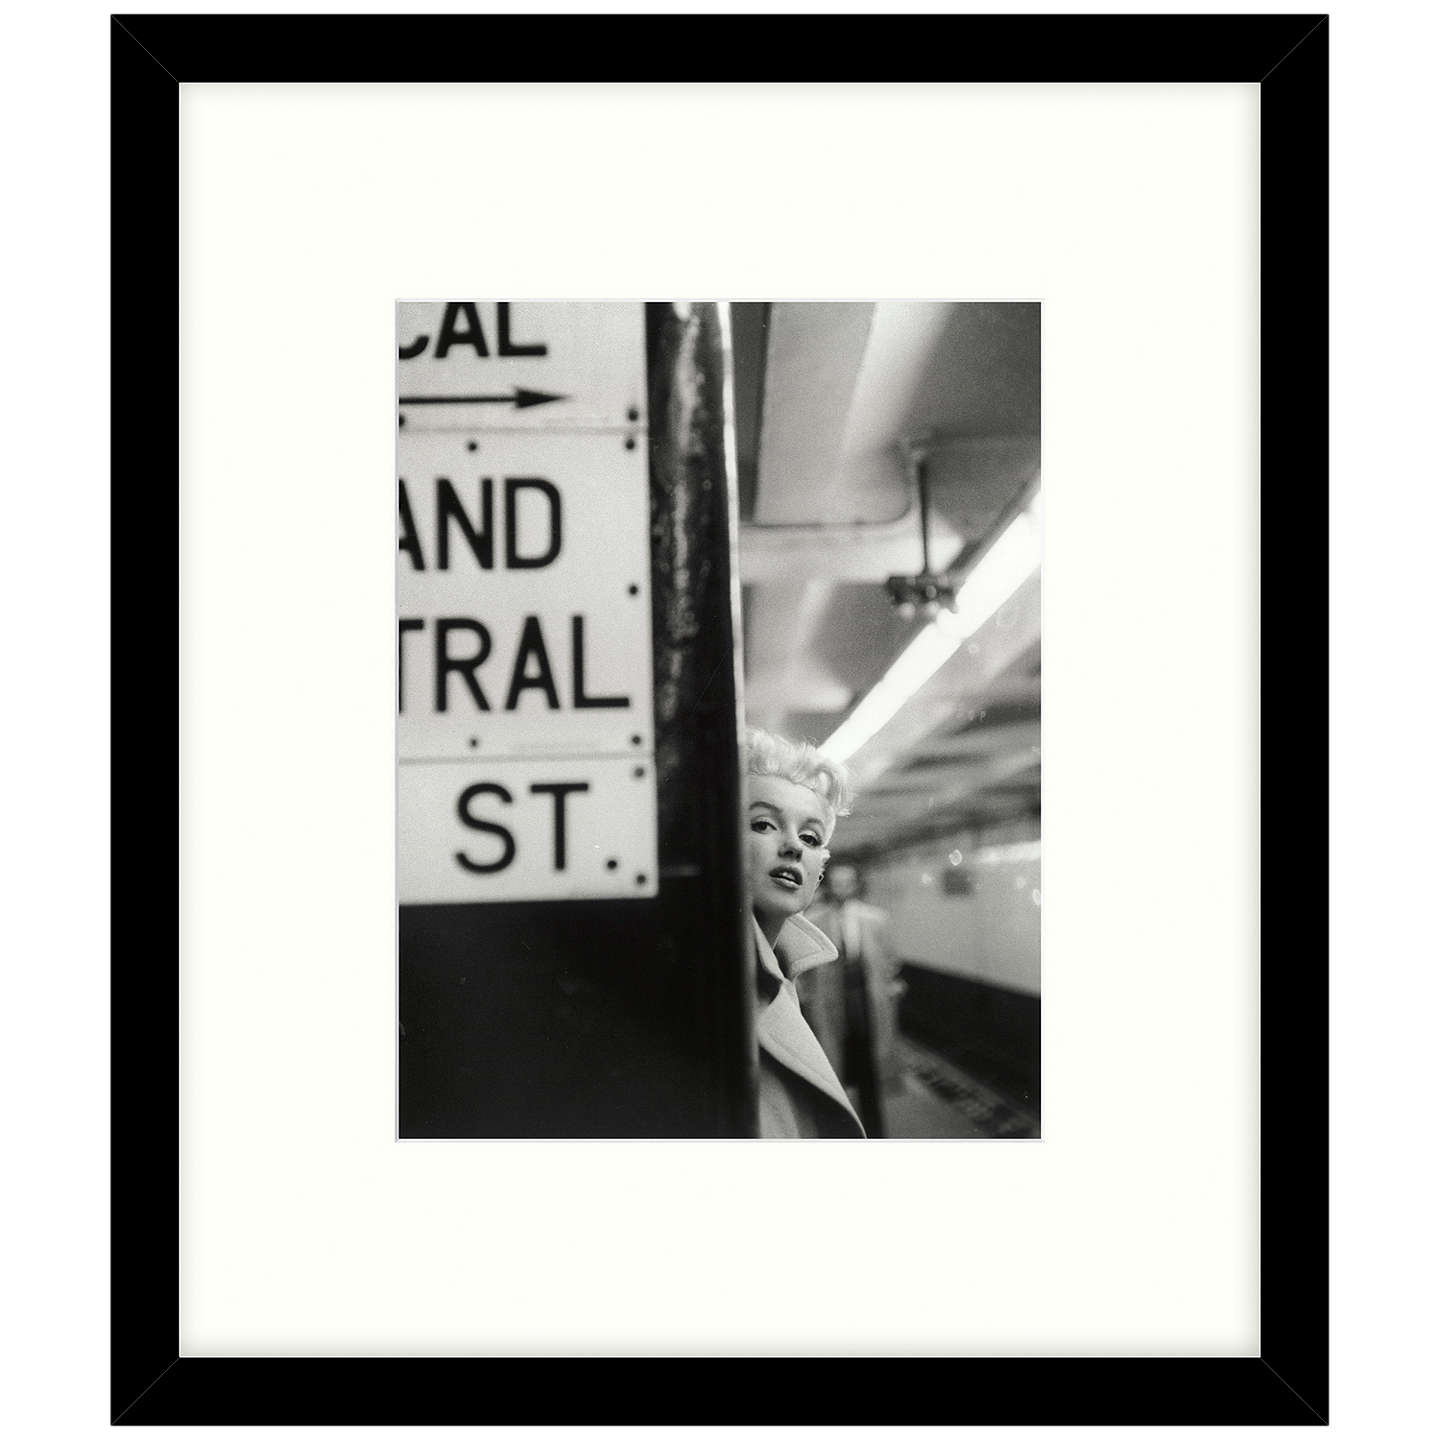 BuyGetty Images Gallery - Marilyn In Central Station Framed Print, 49 x 57cm Online at johnlewis.com